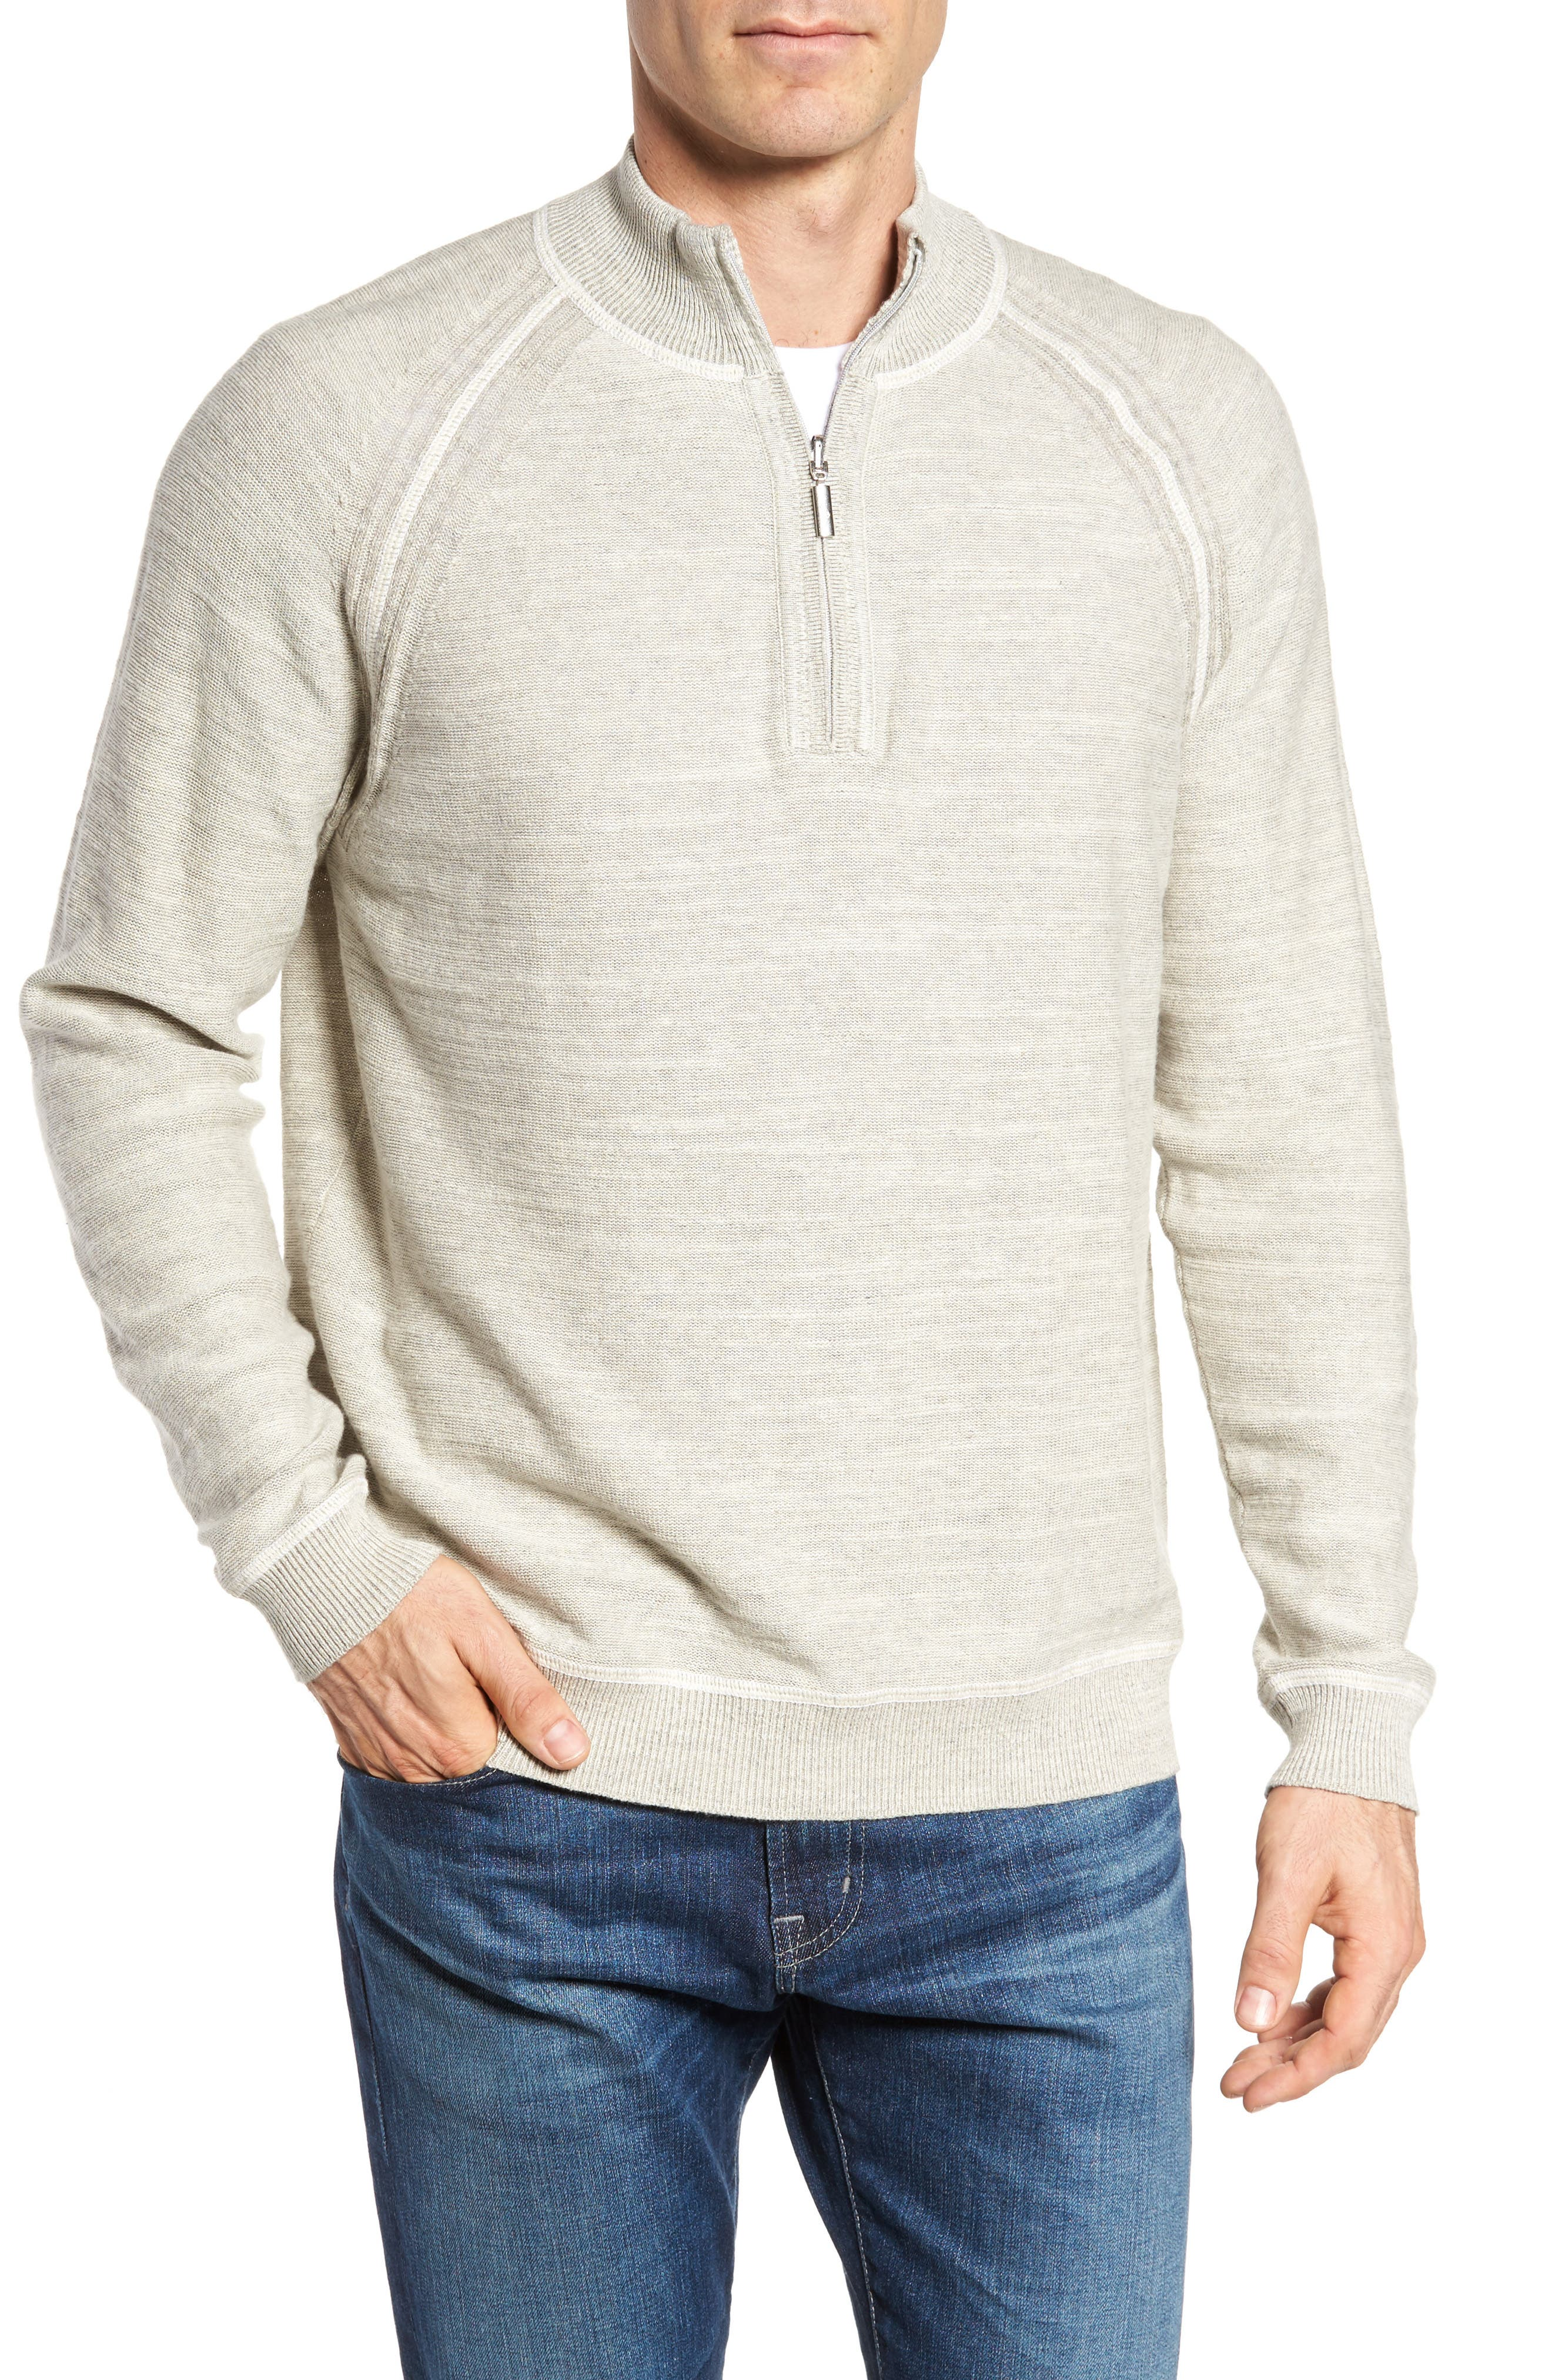 Sandy Bay Half-Zip Pullover,                             Main thumbnail 1, color,                             200